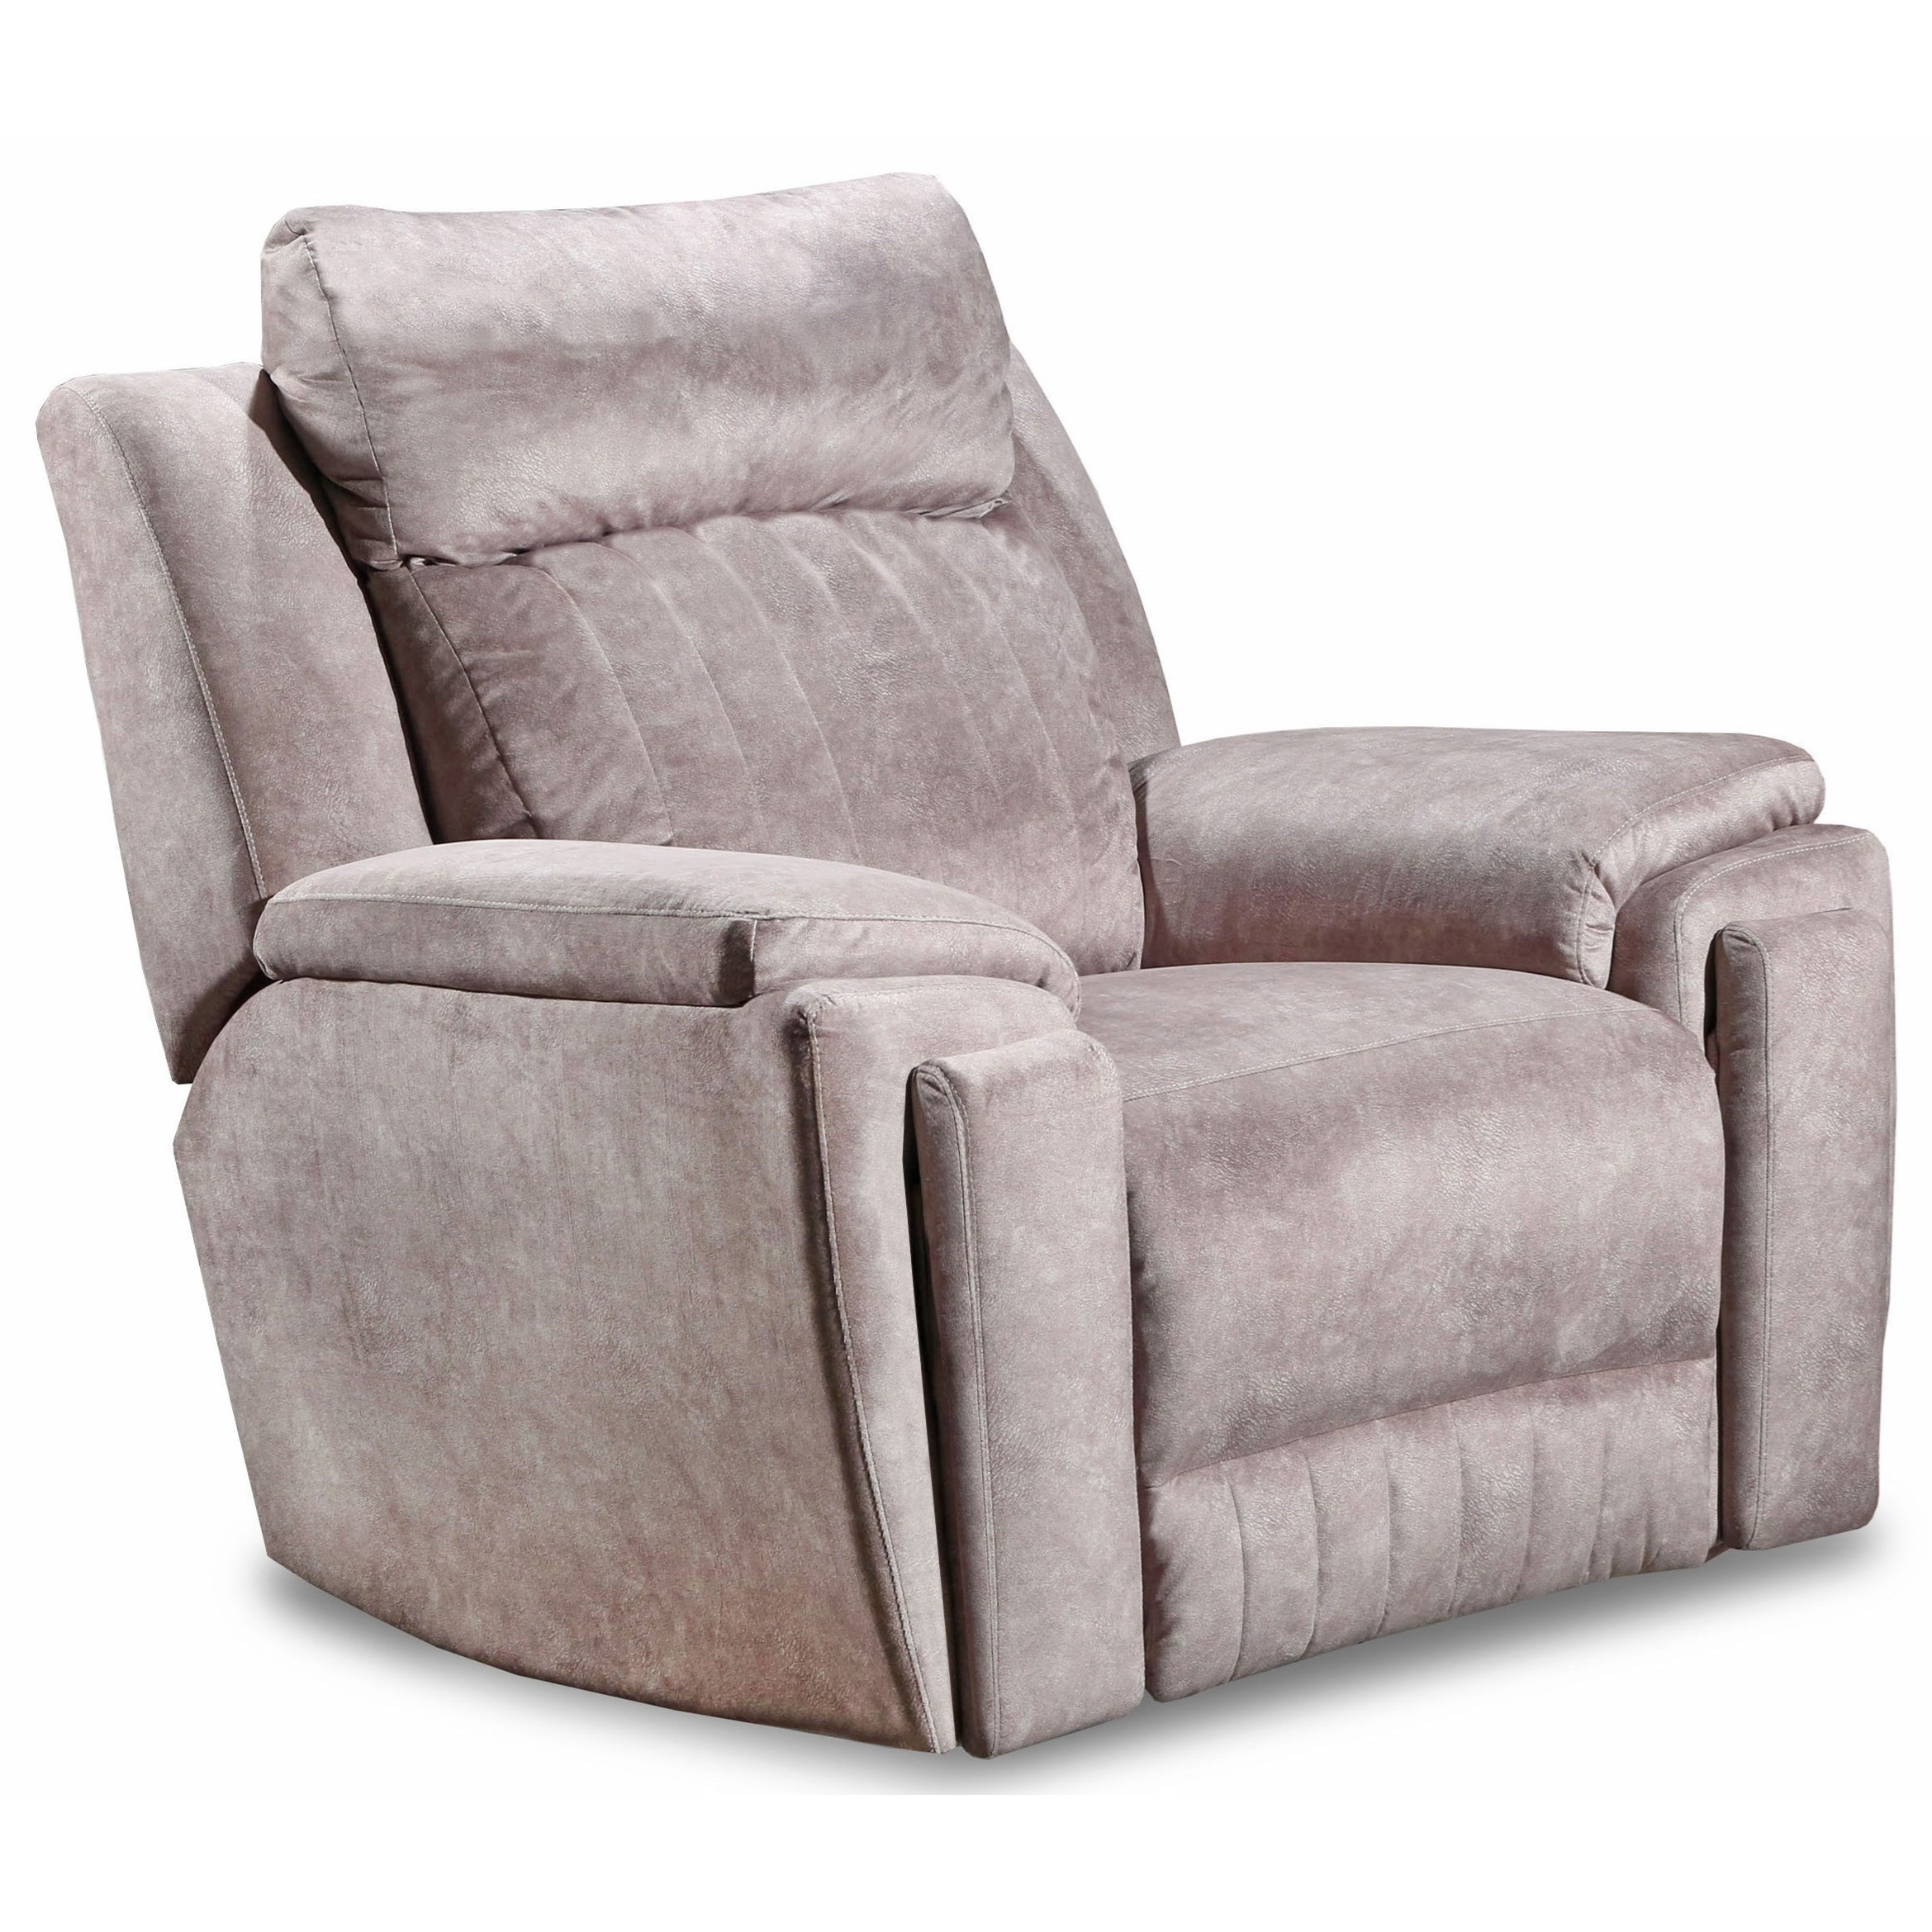 Silver Screen Wallhugger Recliner by Southern Motion at Sparks HomeStore